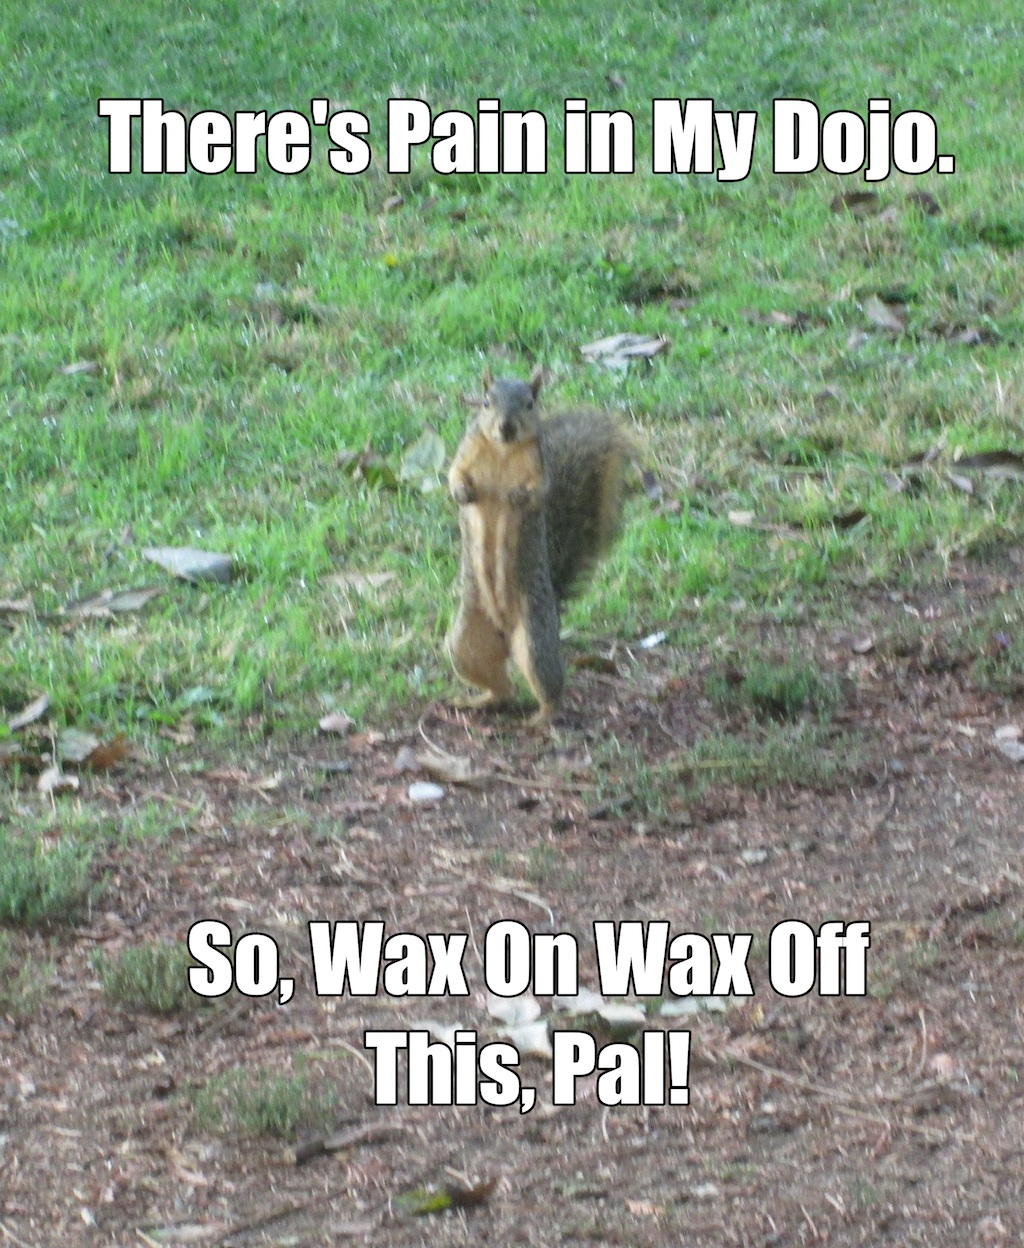 There's pain in my dojo. So, wax on wax off this, pal!